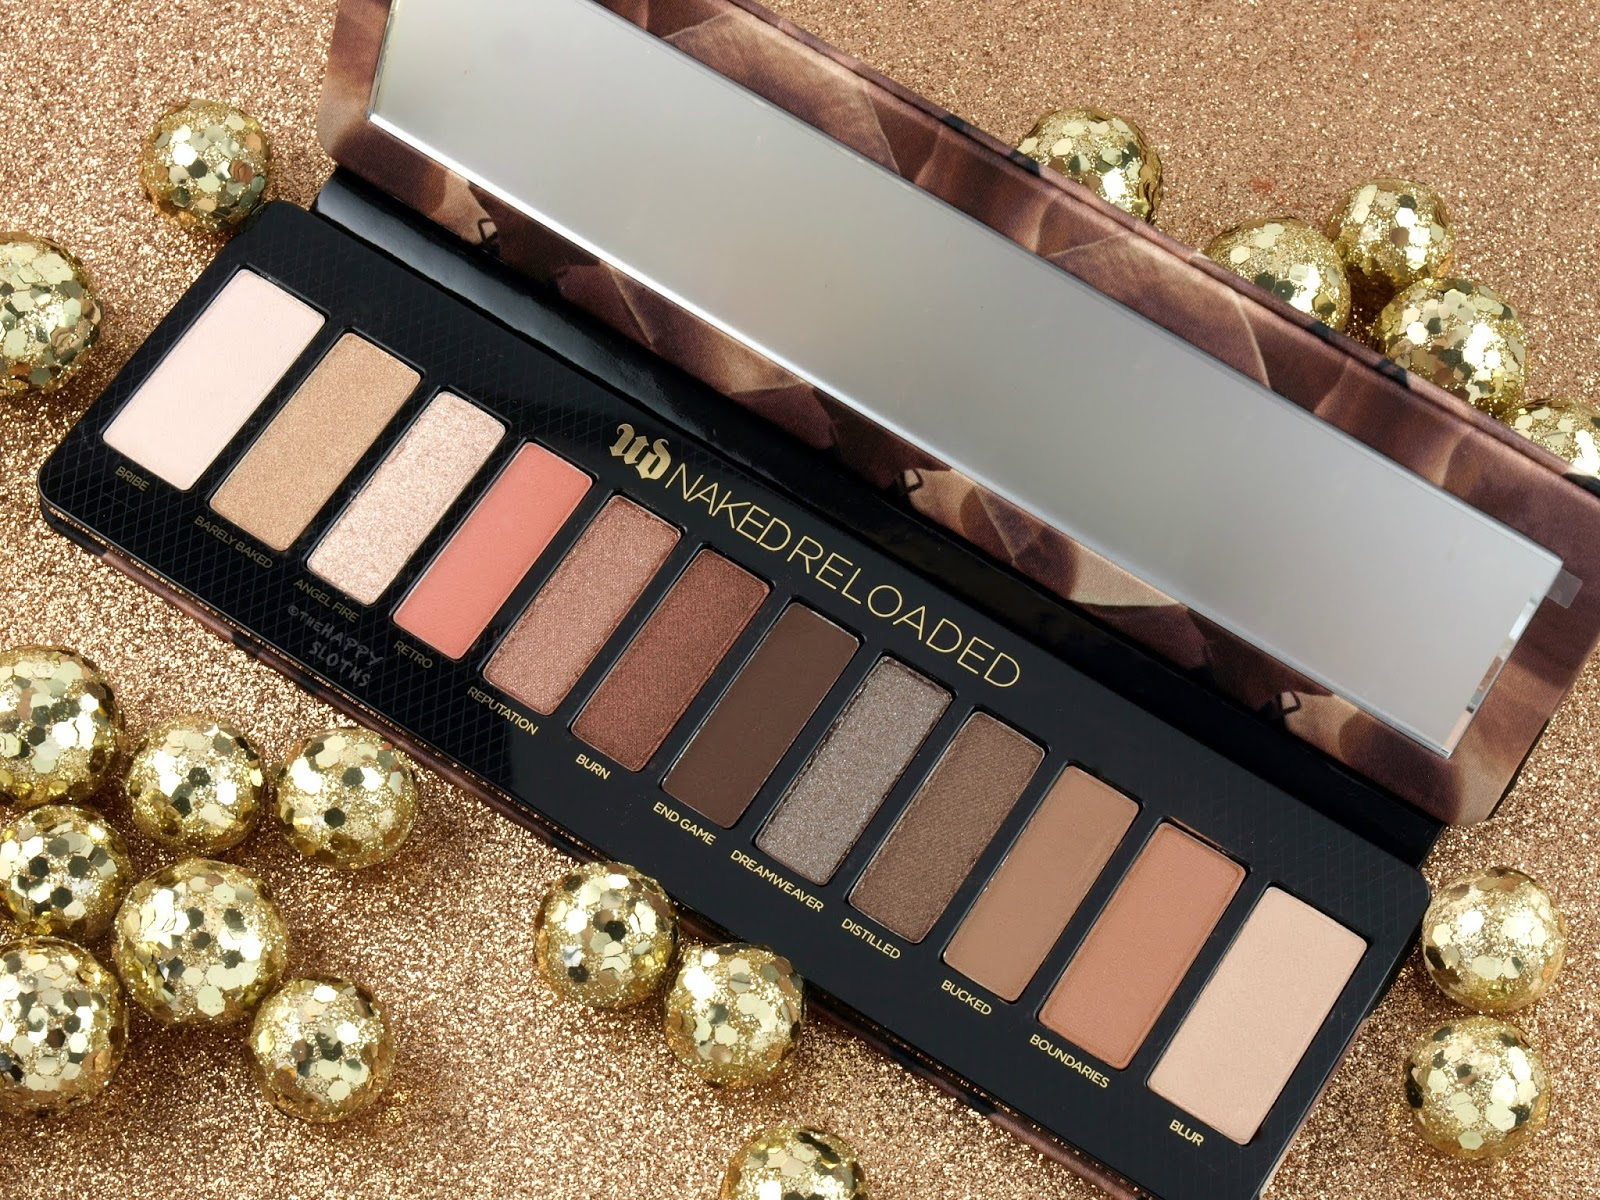 Urban Decay | Naked Reloaded Eyeshadow Palette: Review and Swatches